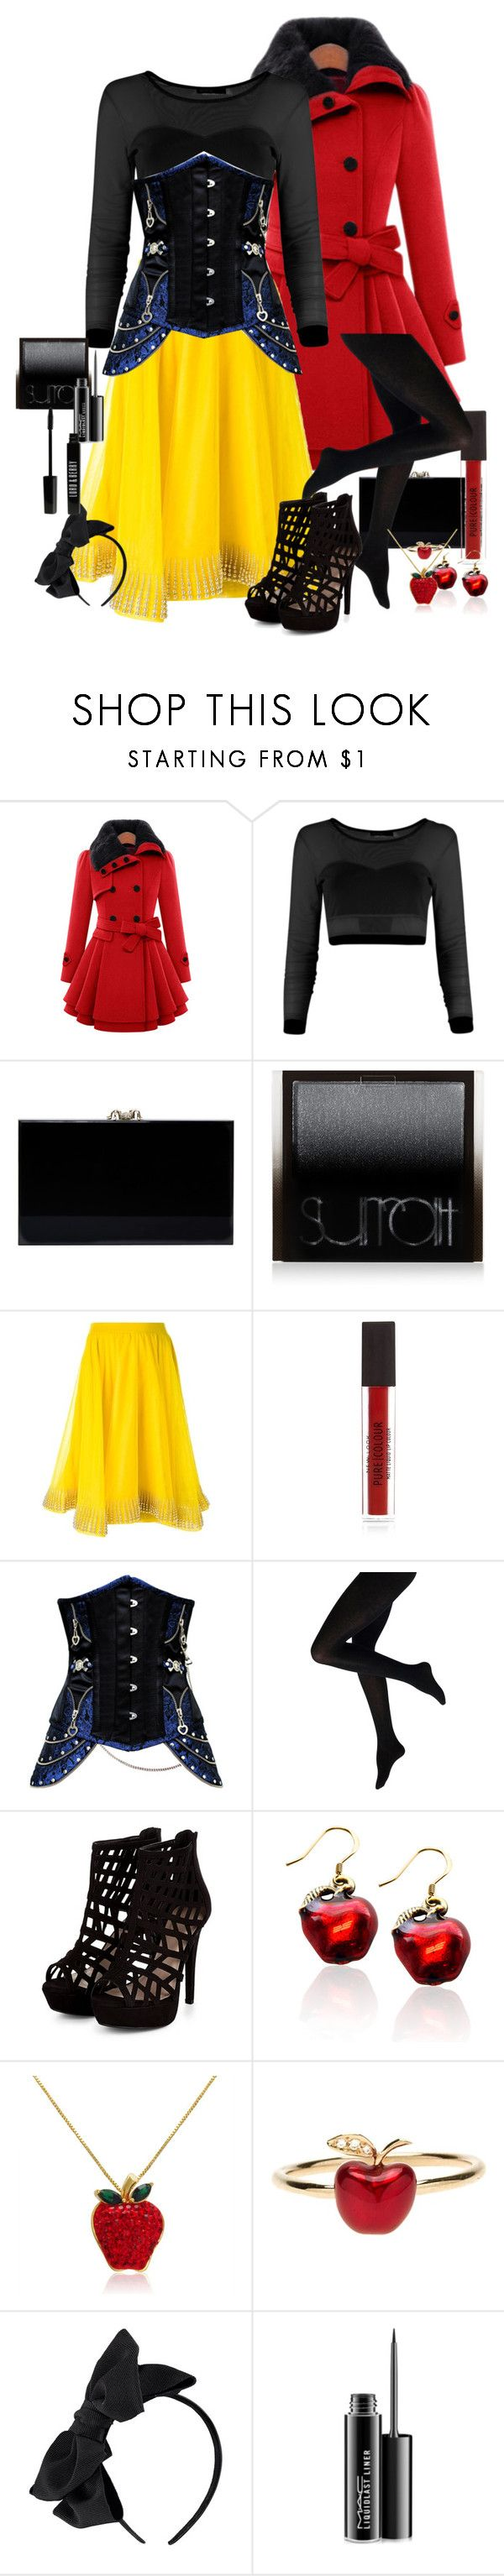 """The Dark Miss: Snow White"" by thehelsinghatter ❤ liked on Polyvore featuring Charlotte Olympia, Surratt, Manish Arora, Whimsical Watches, Amanda Rose Collection, Alison Lou, MAC Cosmetics, Lord & Berry, women's clothing and women"